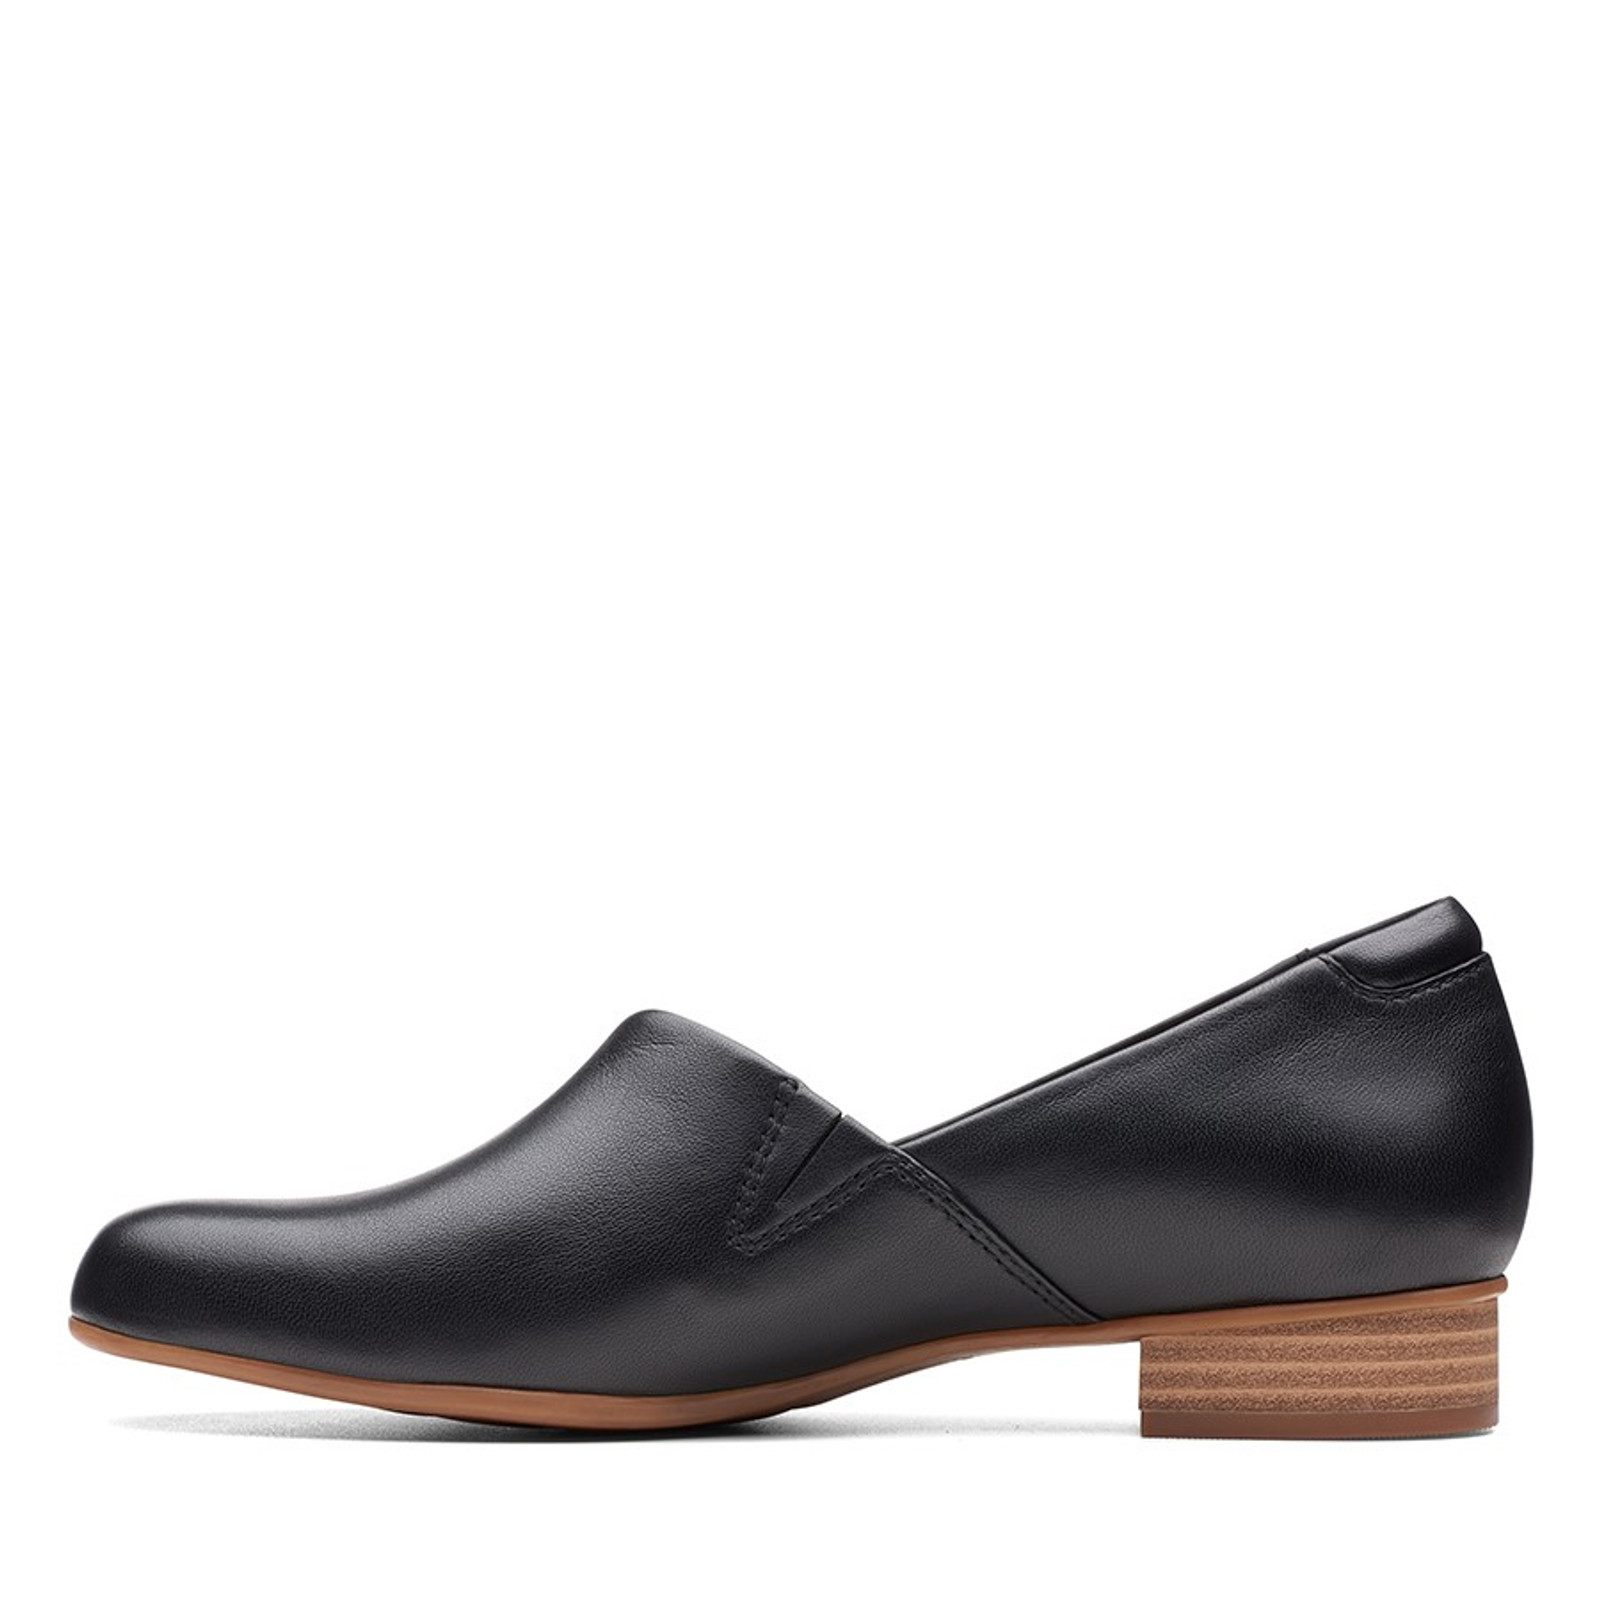 Clarks Womens JULIET PALM Black Leather